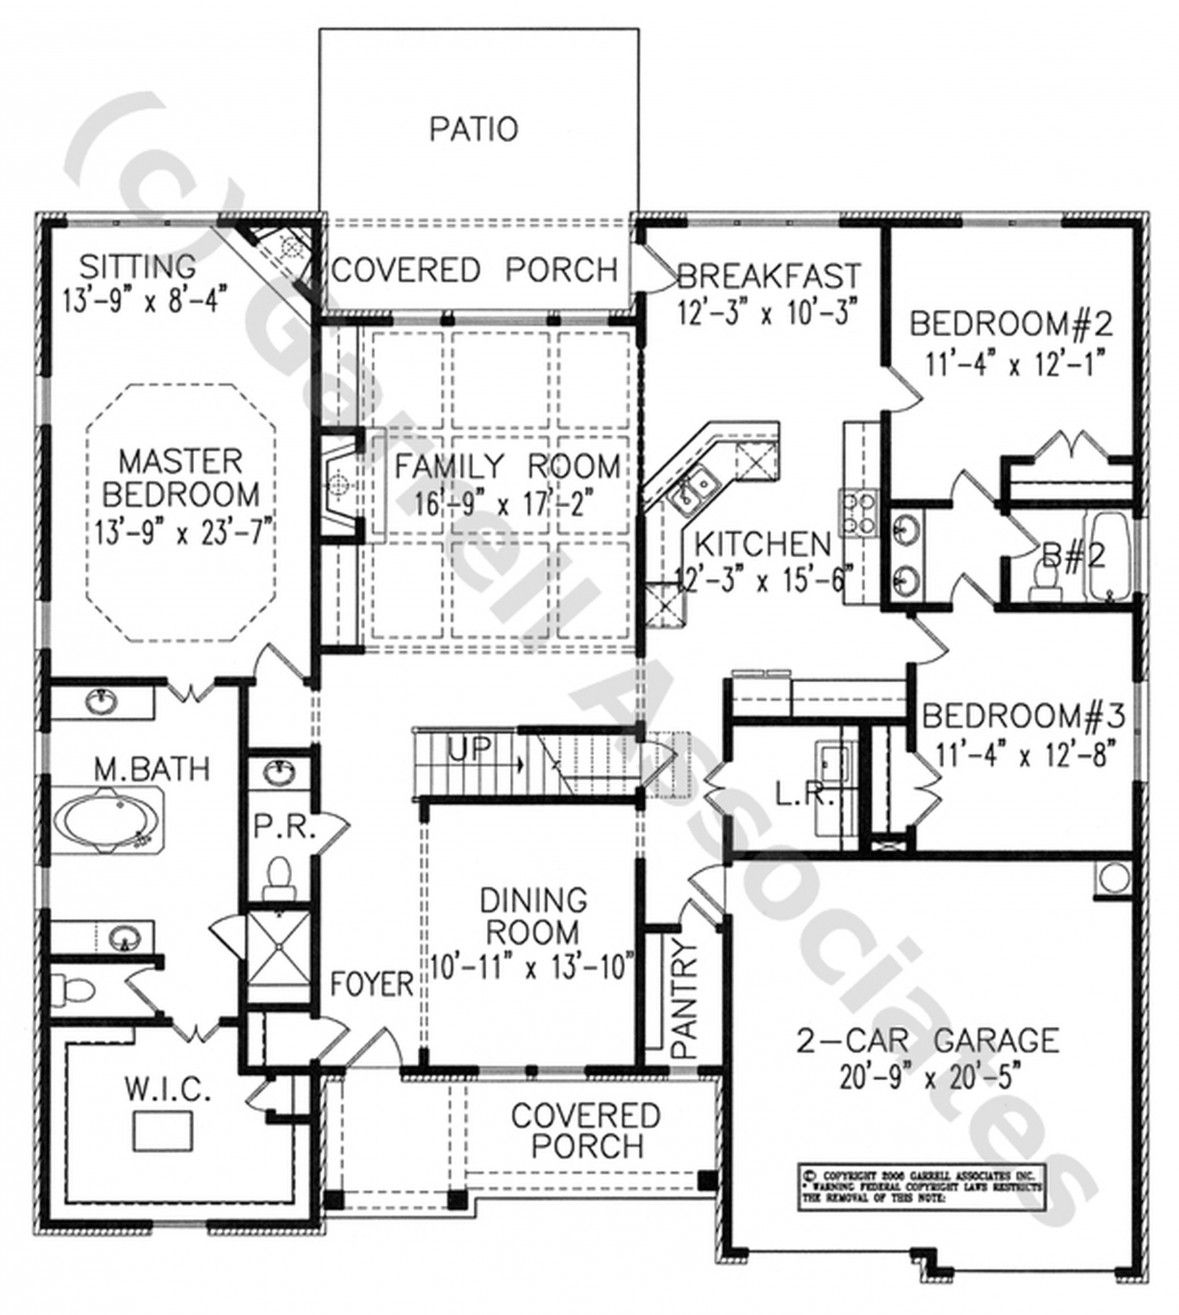 Design Your Own Bedroom Online For Free New Floor Plan Nice Black White House Plans Winning Bedrooms Modern Review